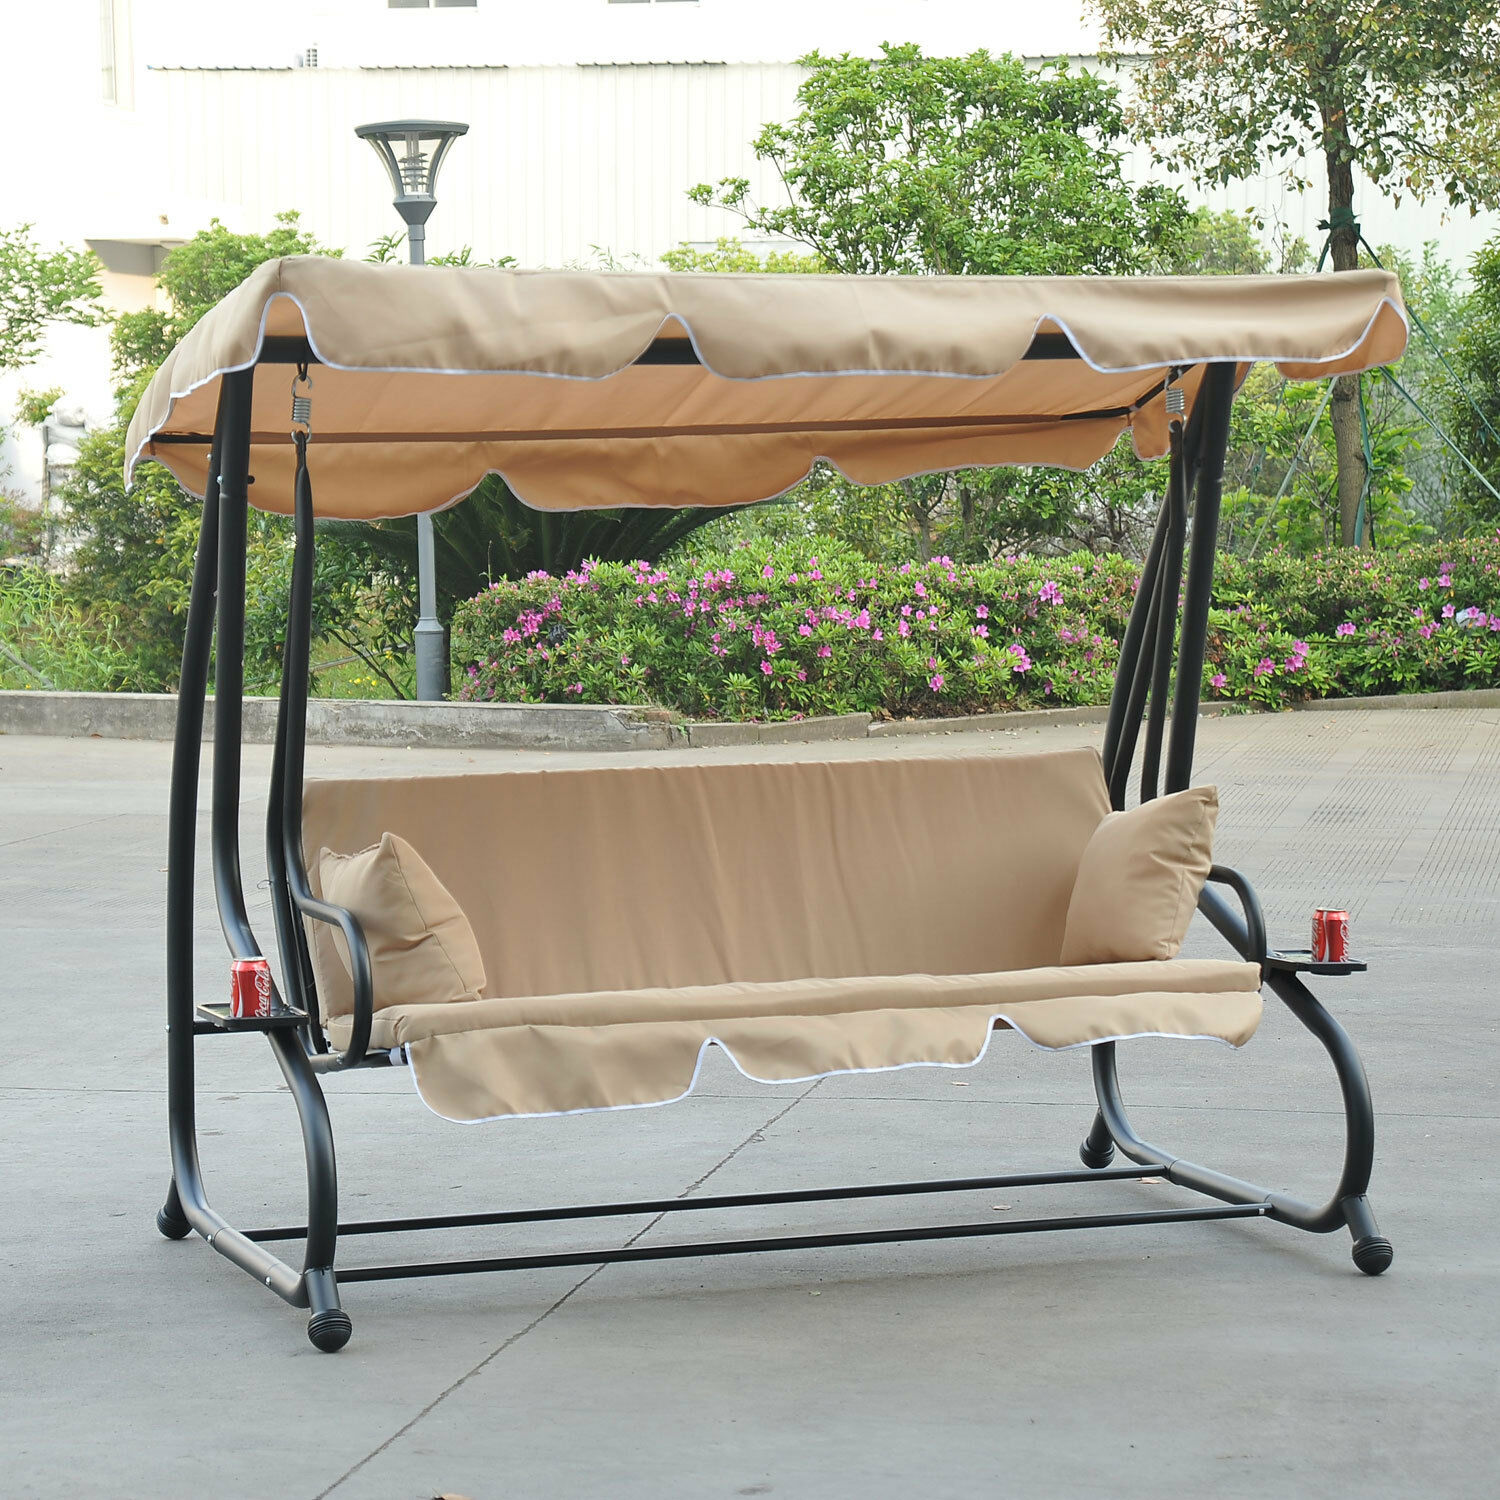 3 person Porch Swing Bed Canopy Cup Holders Hammock Patio Lawn